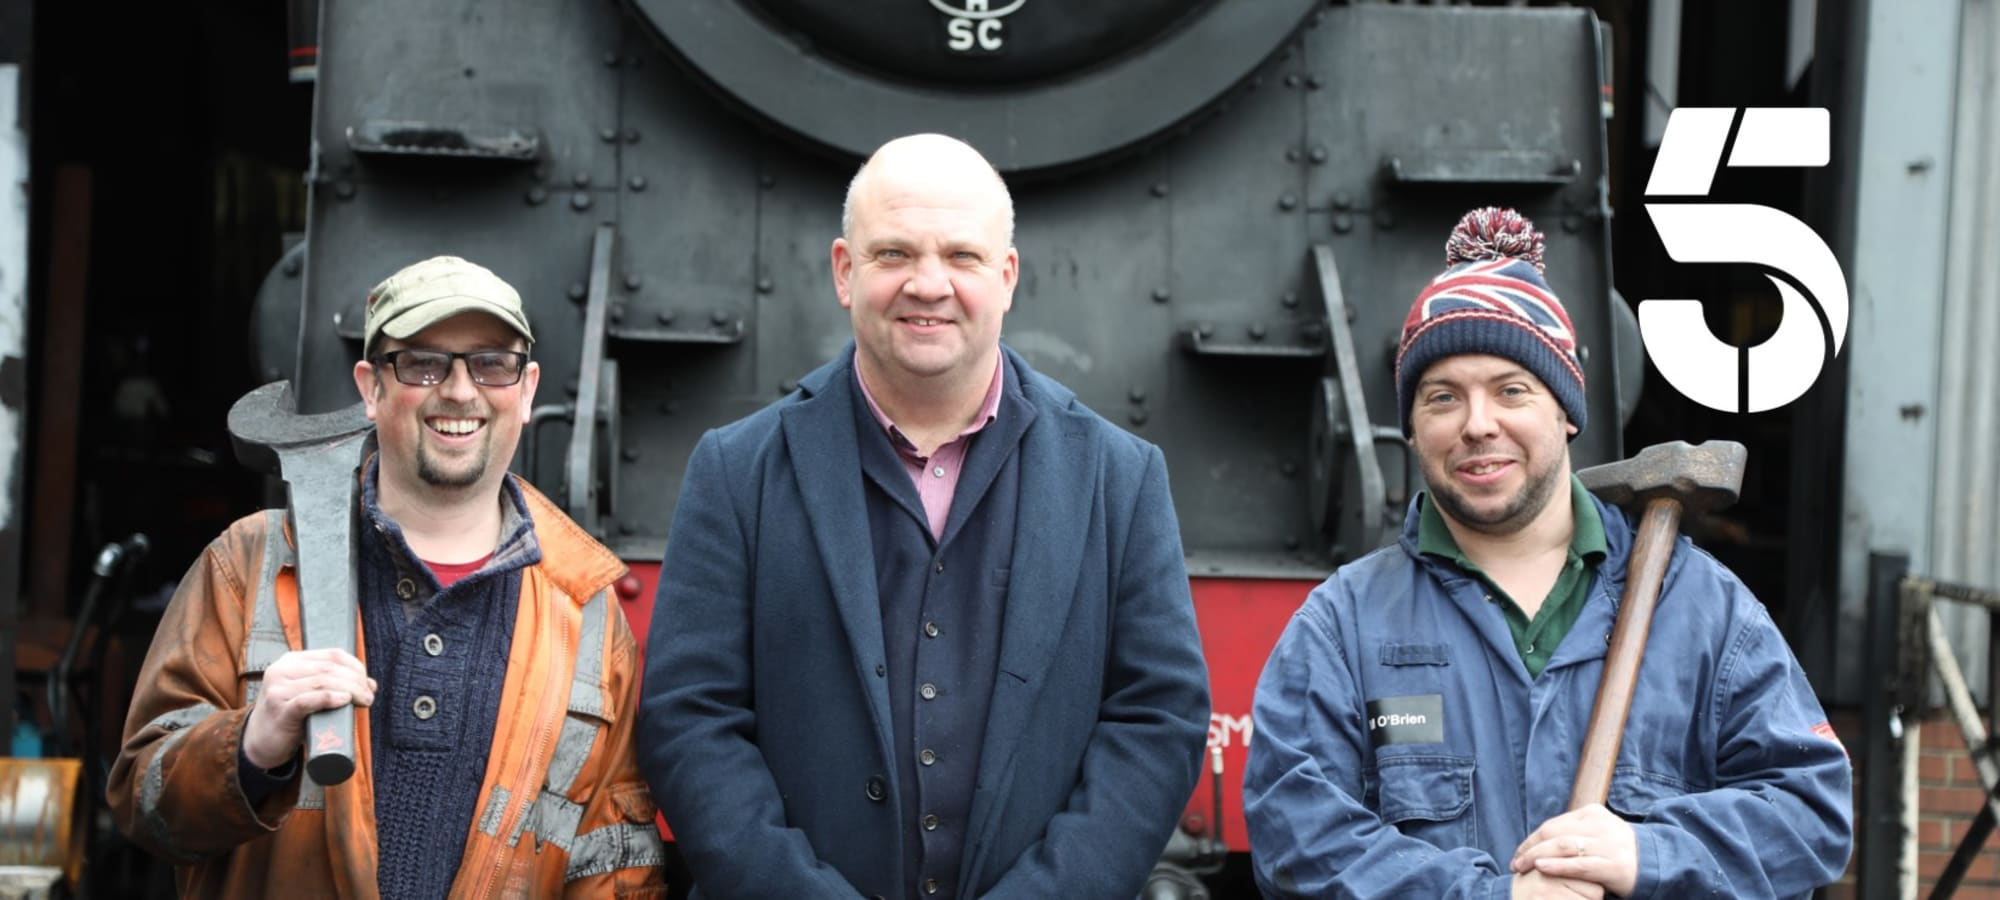 the-yorkshire-steam-railway-all-aboard-season-2